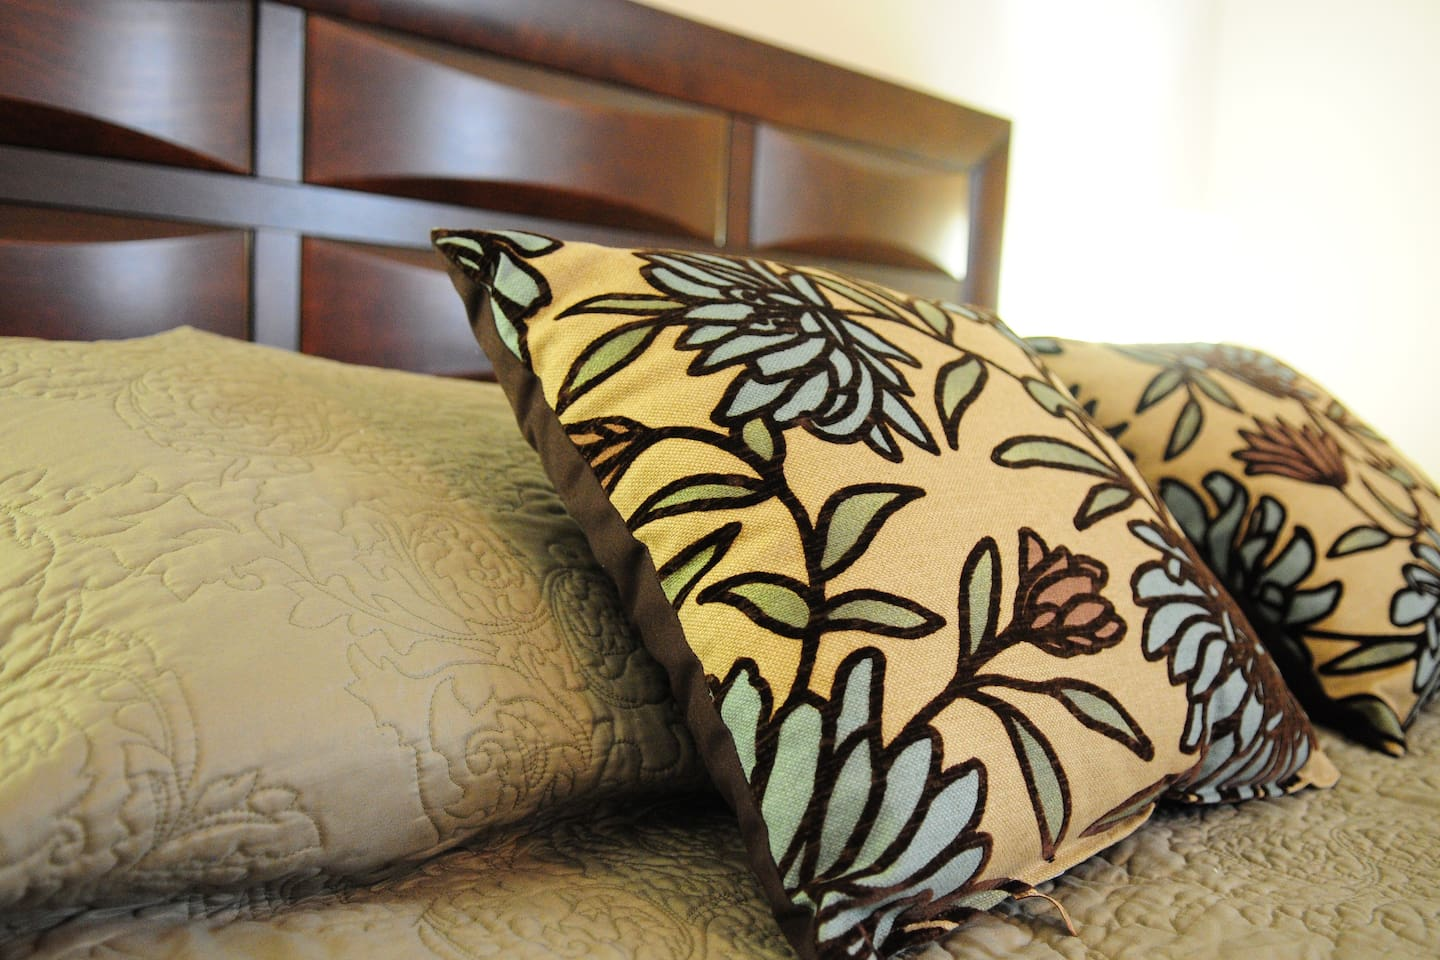 Decorative pillows. adorning bed